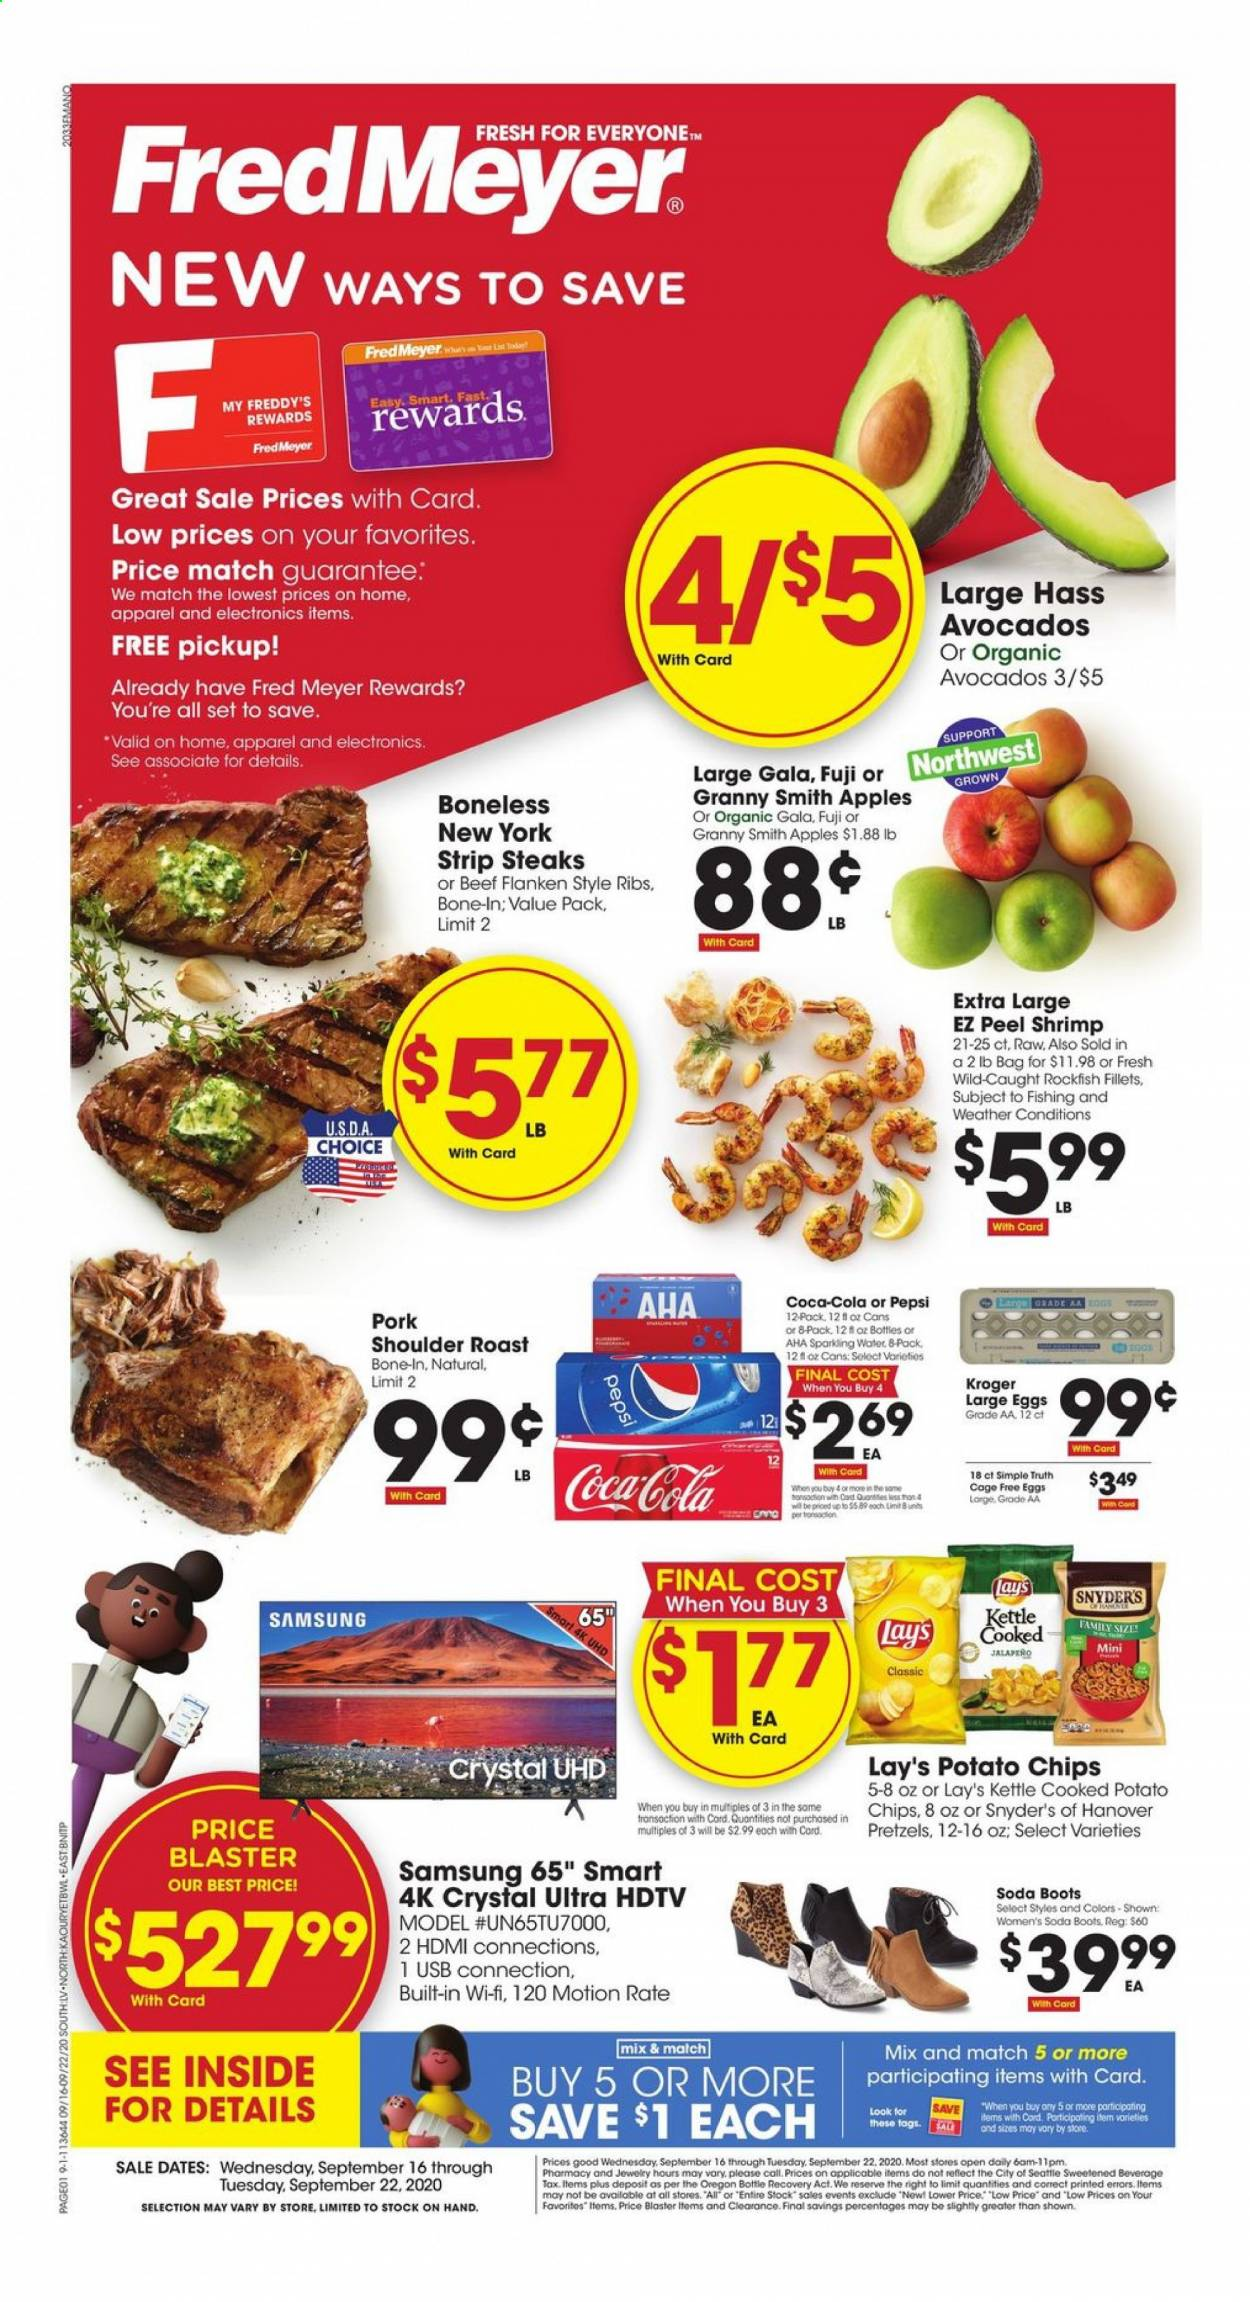 Fred Meyer Flyer - 09.16.2020 - 09.22.2020 - Sales products - apparel, apples, avocado, bag, beef meat, boots, bottle, coca-cola, dates, eggs, rockfish, samsung, shrimp, wifi, hdmi, hdtv, pork meat, pork shoulder, potato chips, pretzels, pepsi, organic, chips, soda, sparkling water, jewelry, fishing, lay's, blaster, ribs, roast, apple, shrimps, usb, kettle. Page 1.